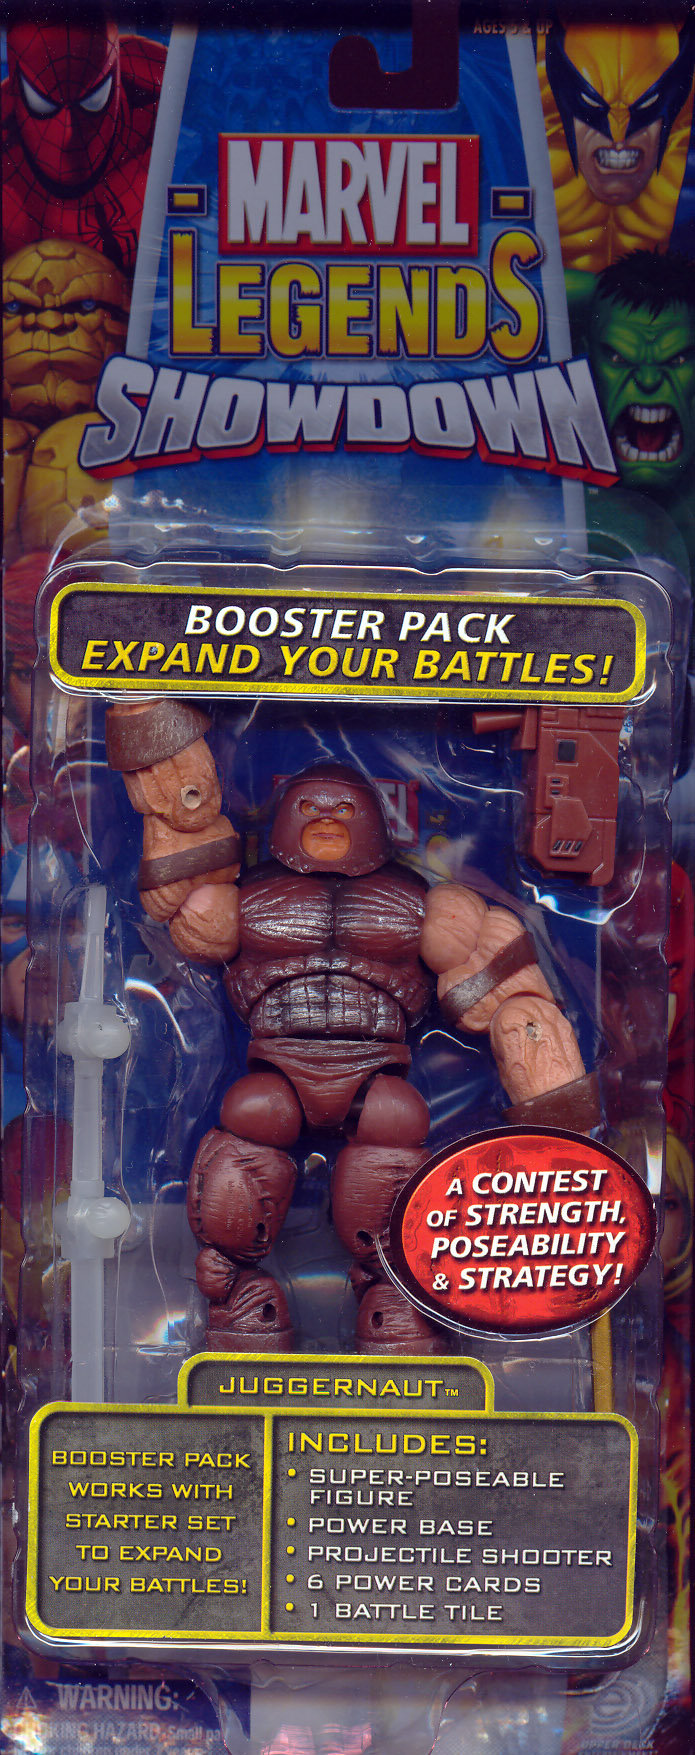 Juggernaut (Marvel Legends Showdown, mouth closed)